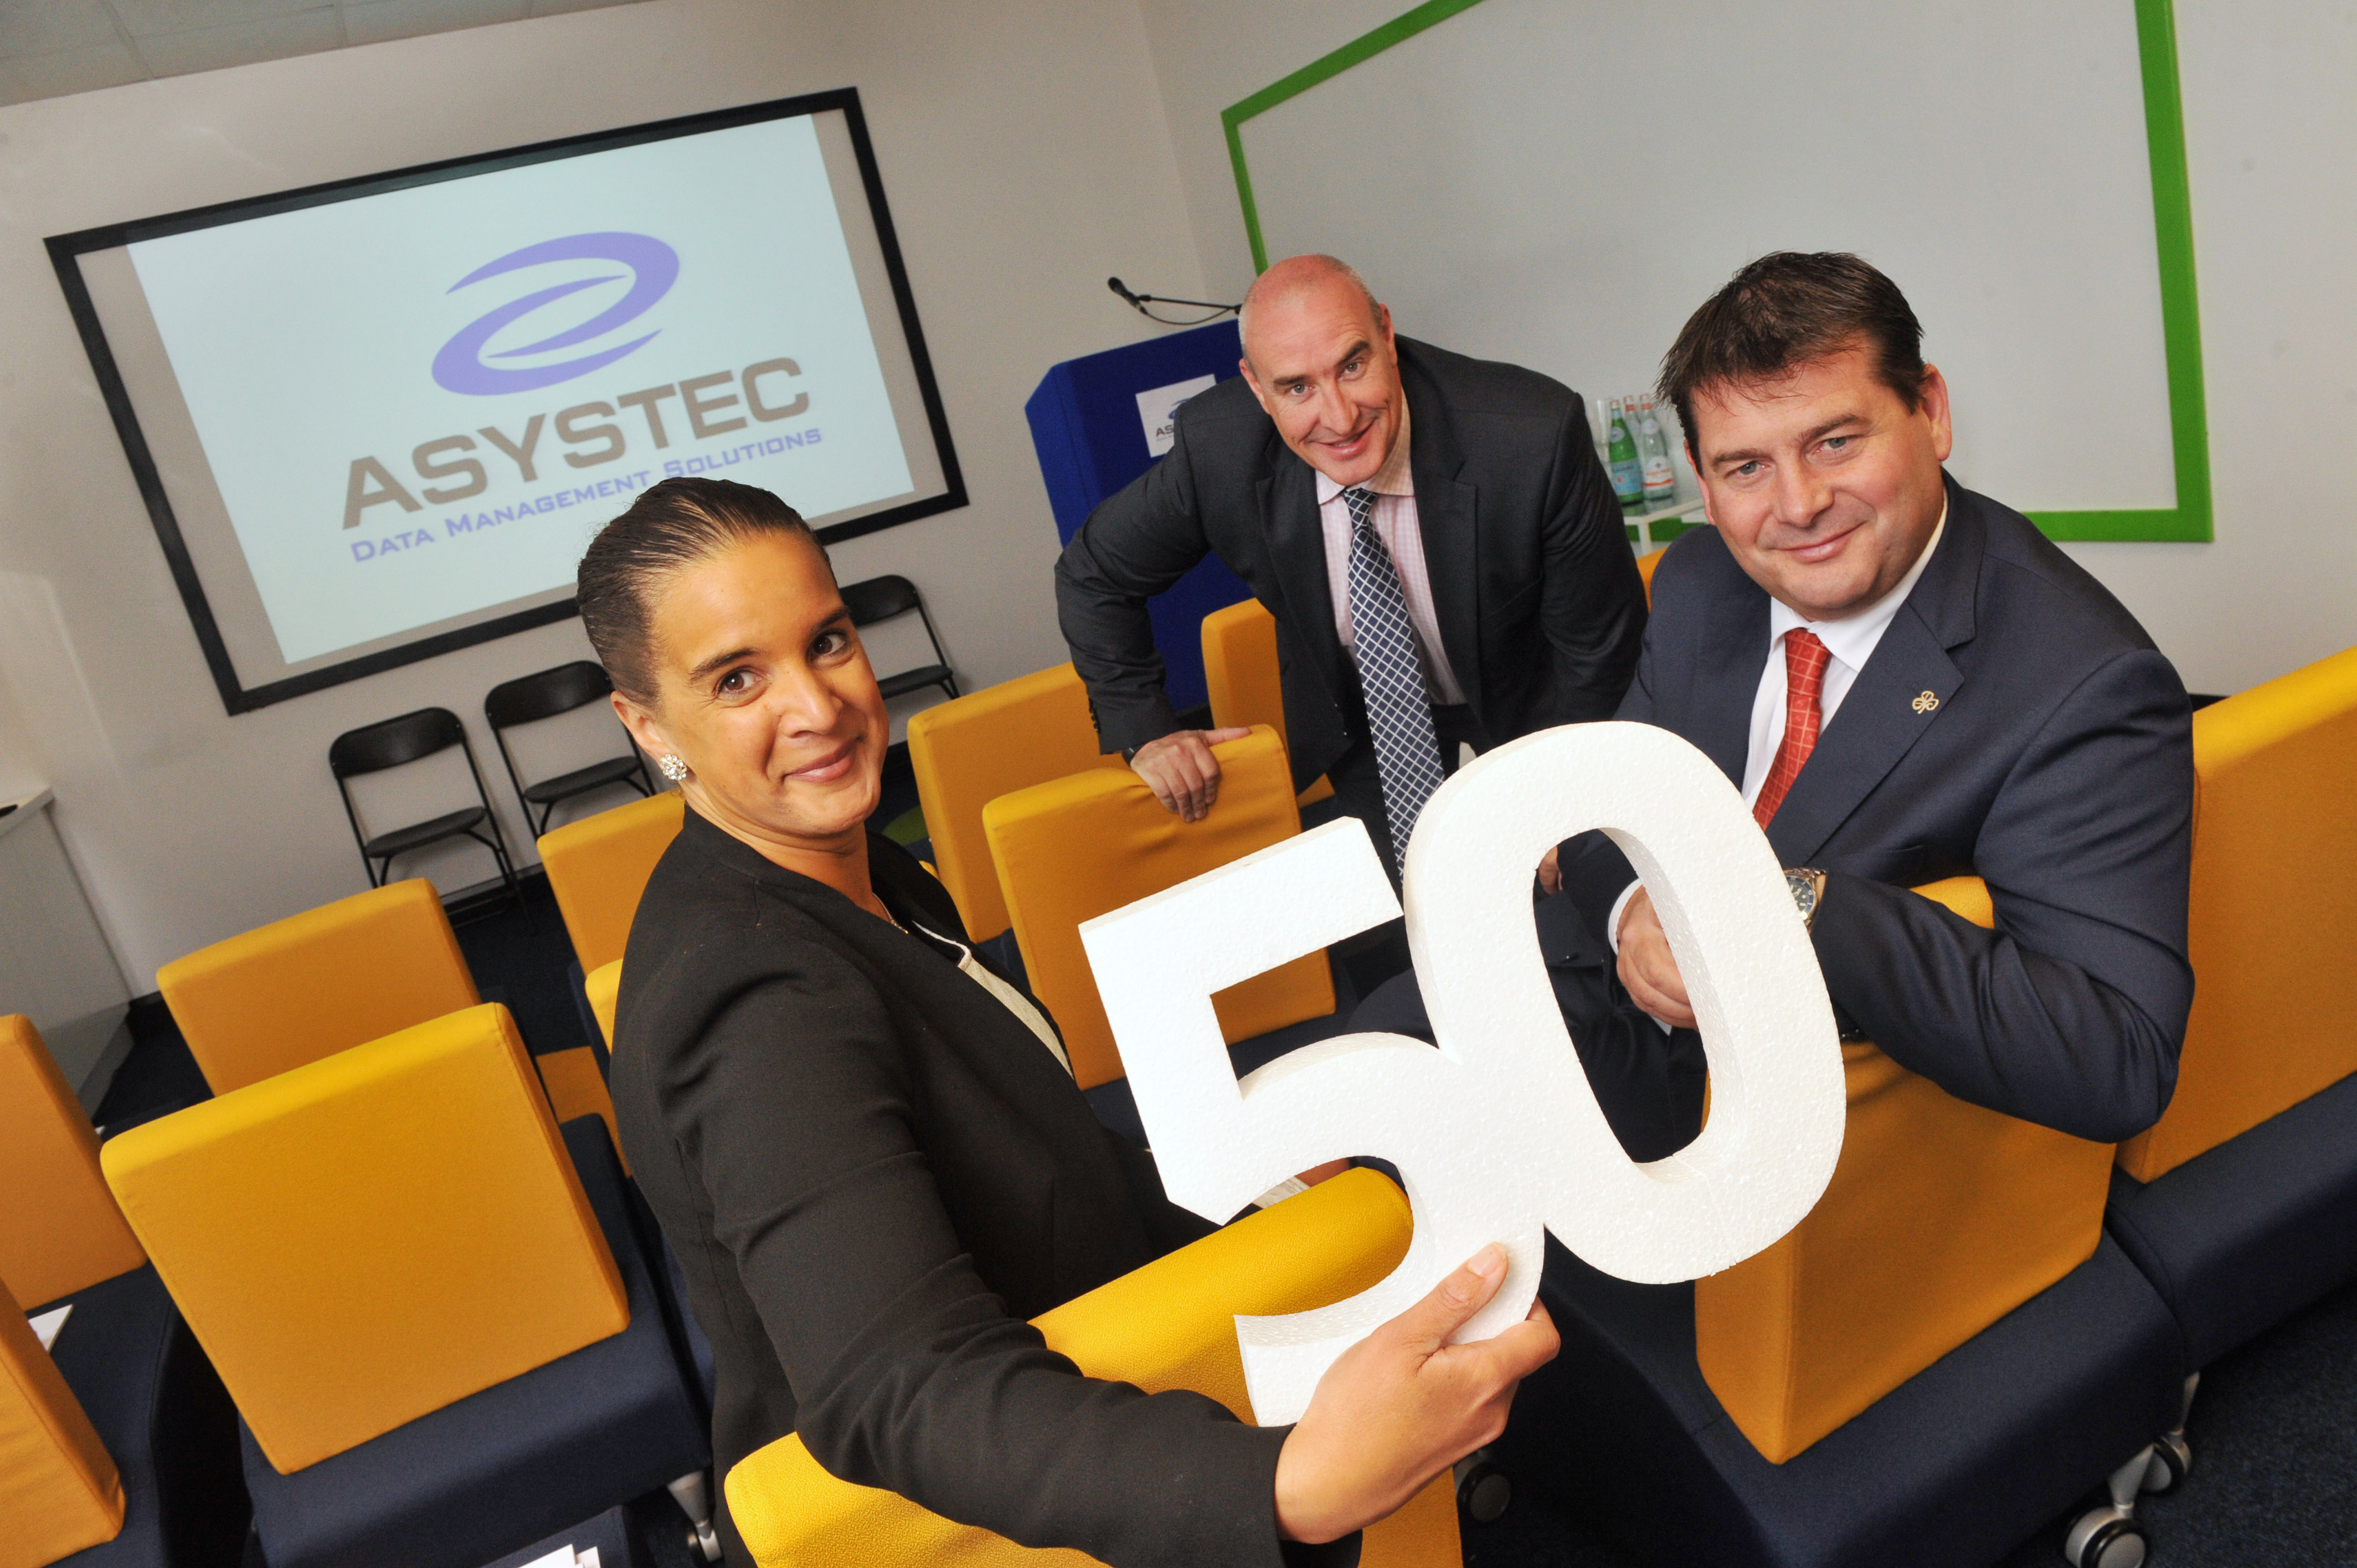 50 Tech jobs announced at Asystec Ballincollig